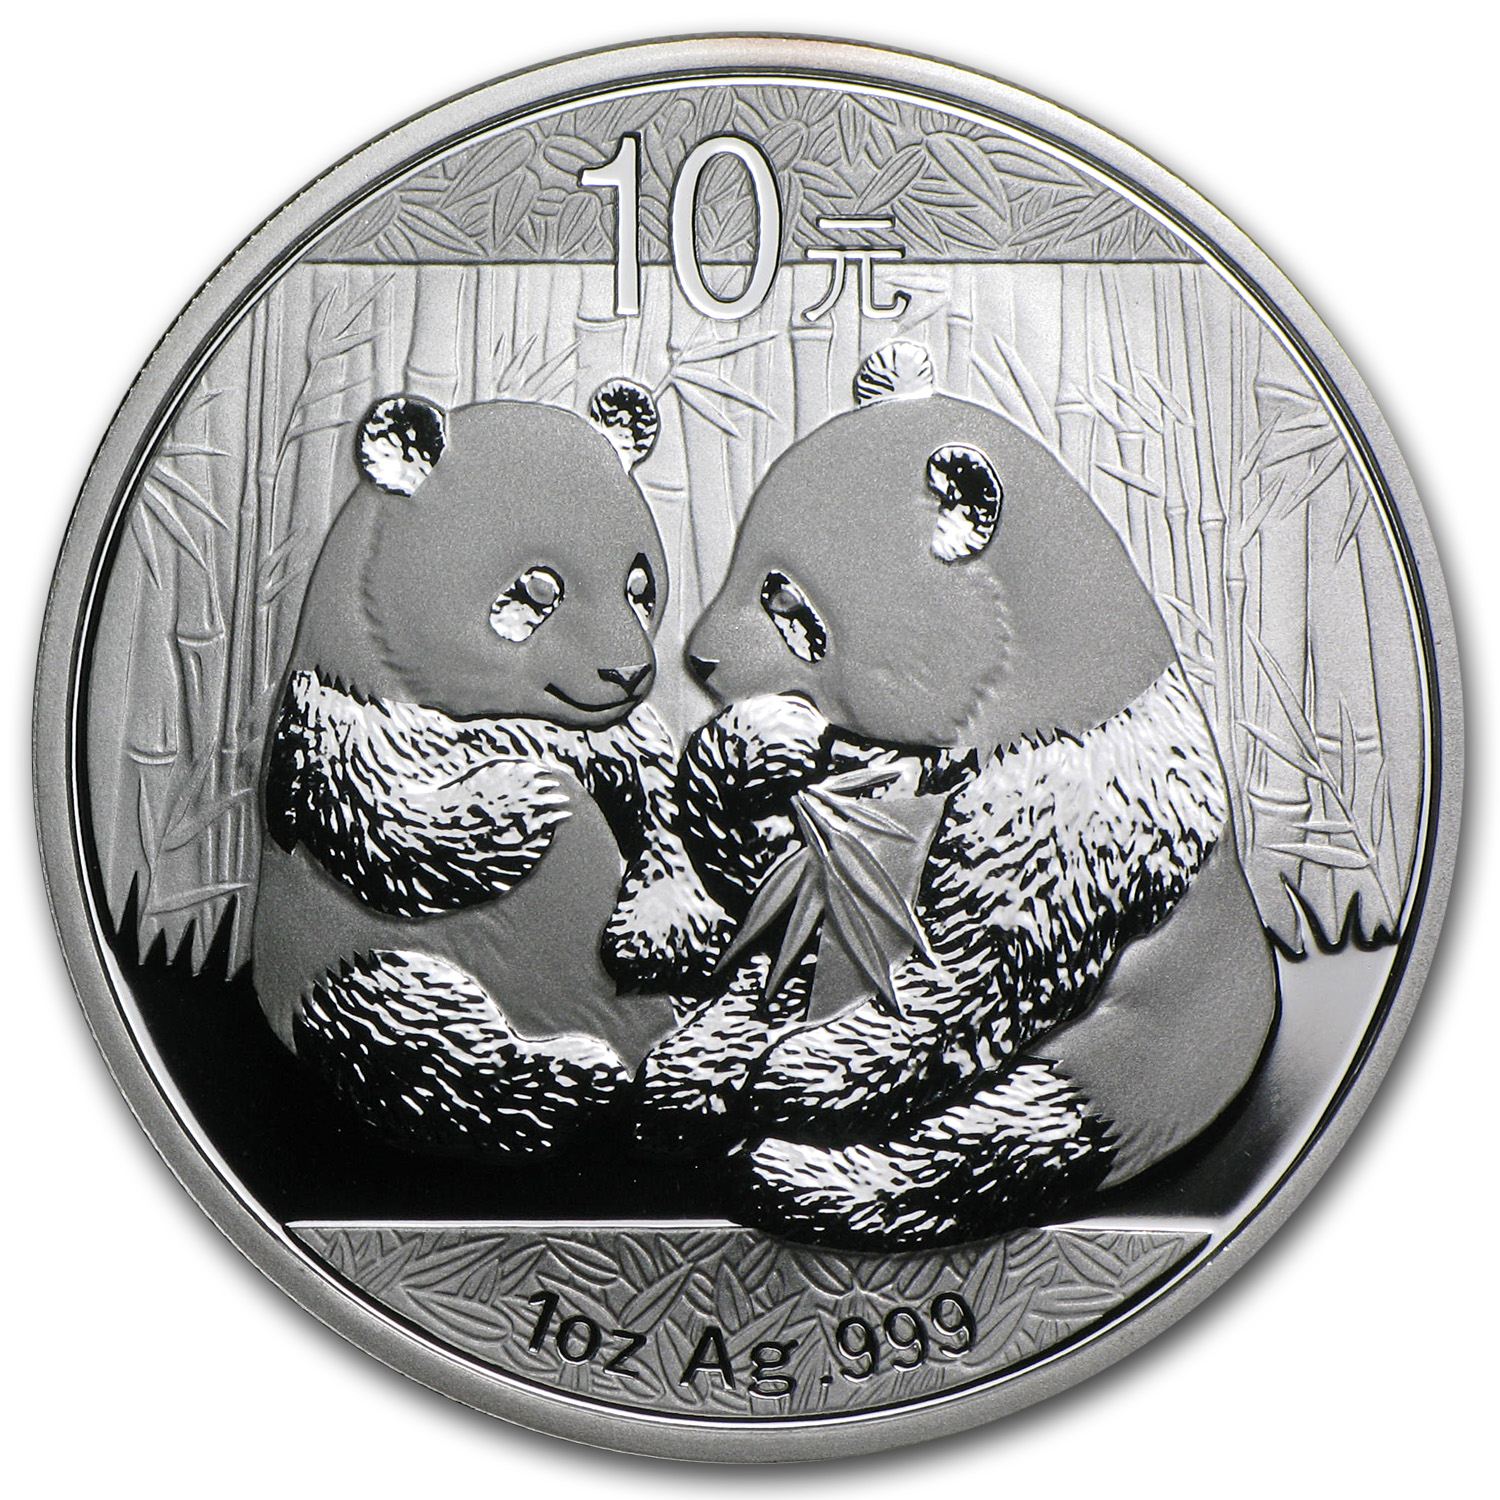 2009 China 1 oz Silver Panda BU (In Capsule)